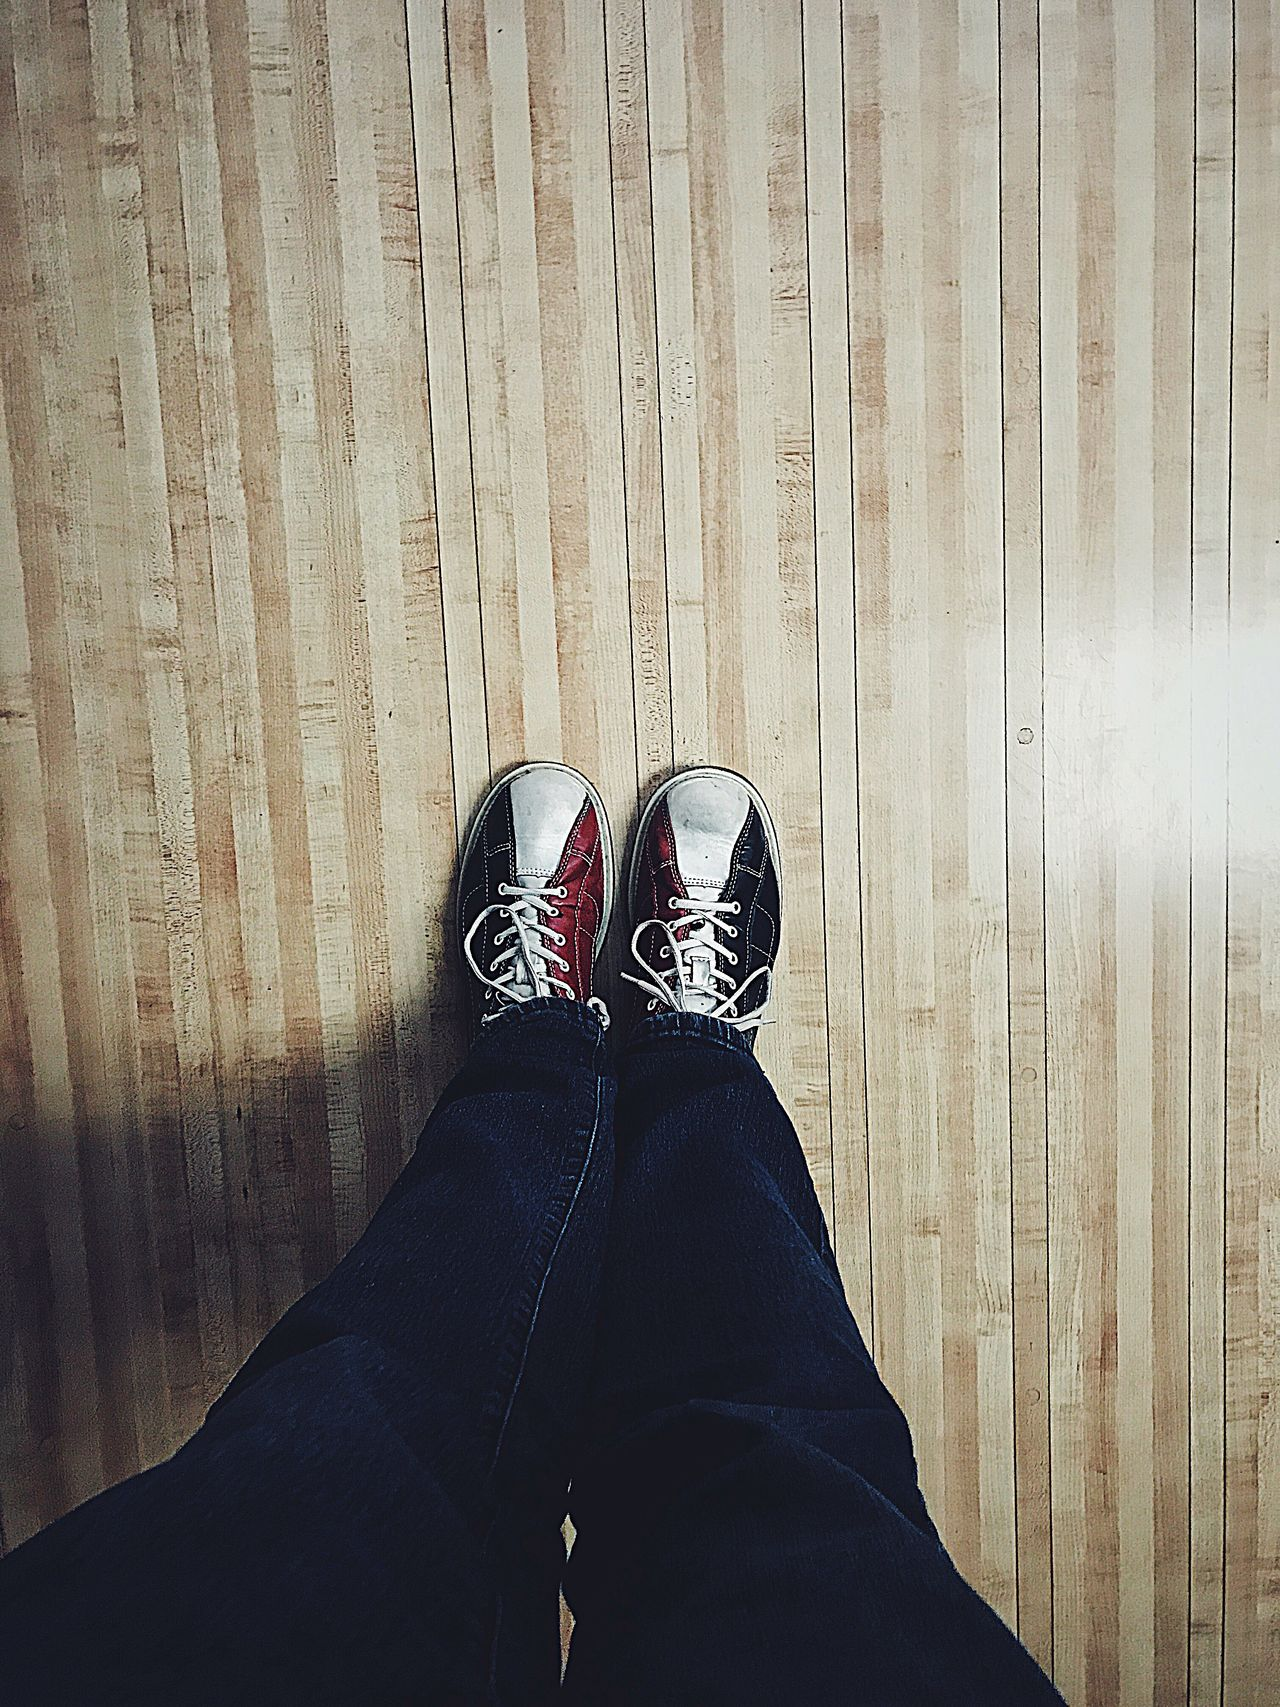 Bowling shoes Low Section Shoe Human Leg Personal Perspective Real People Human Body Part Indoors  One Person Standing Lifestyles Hardwood Floor Directly Above High Angle View Wooden Floor Men People Close-up Bowling